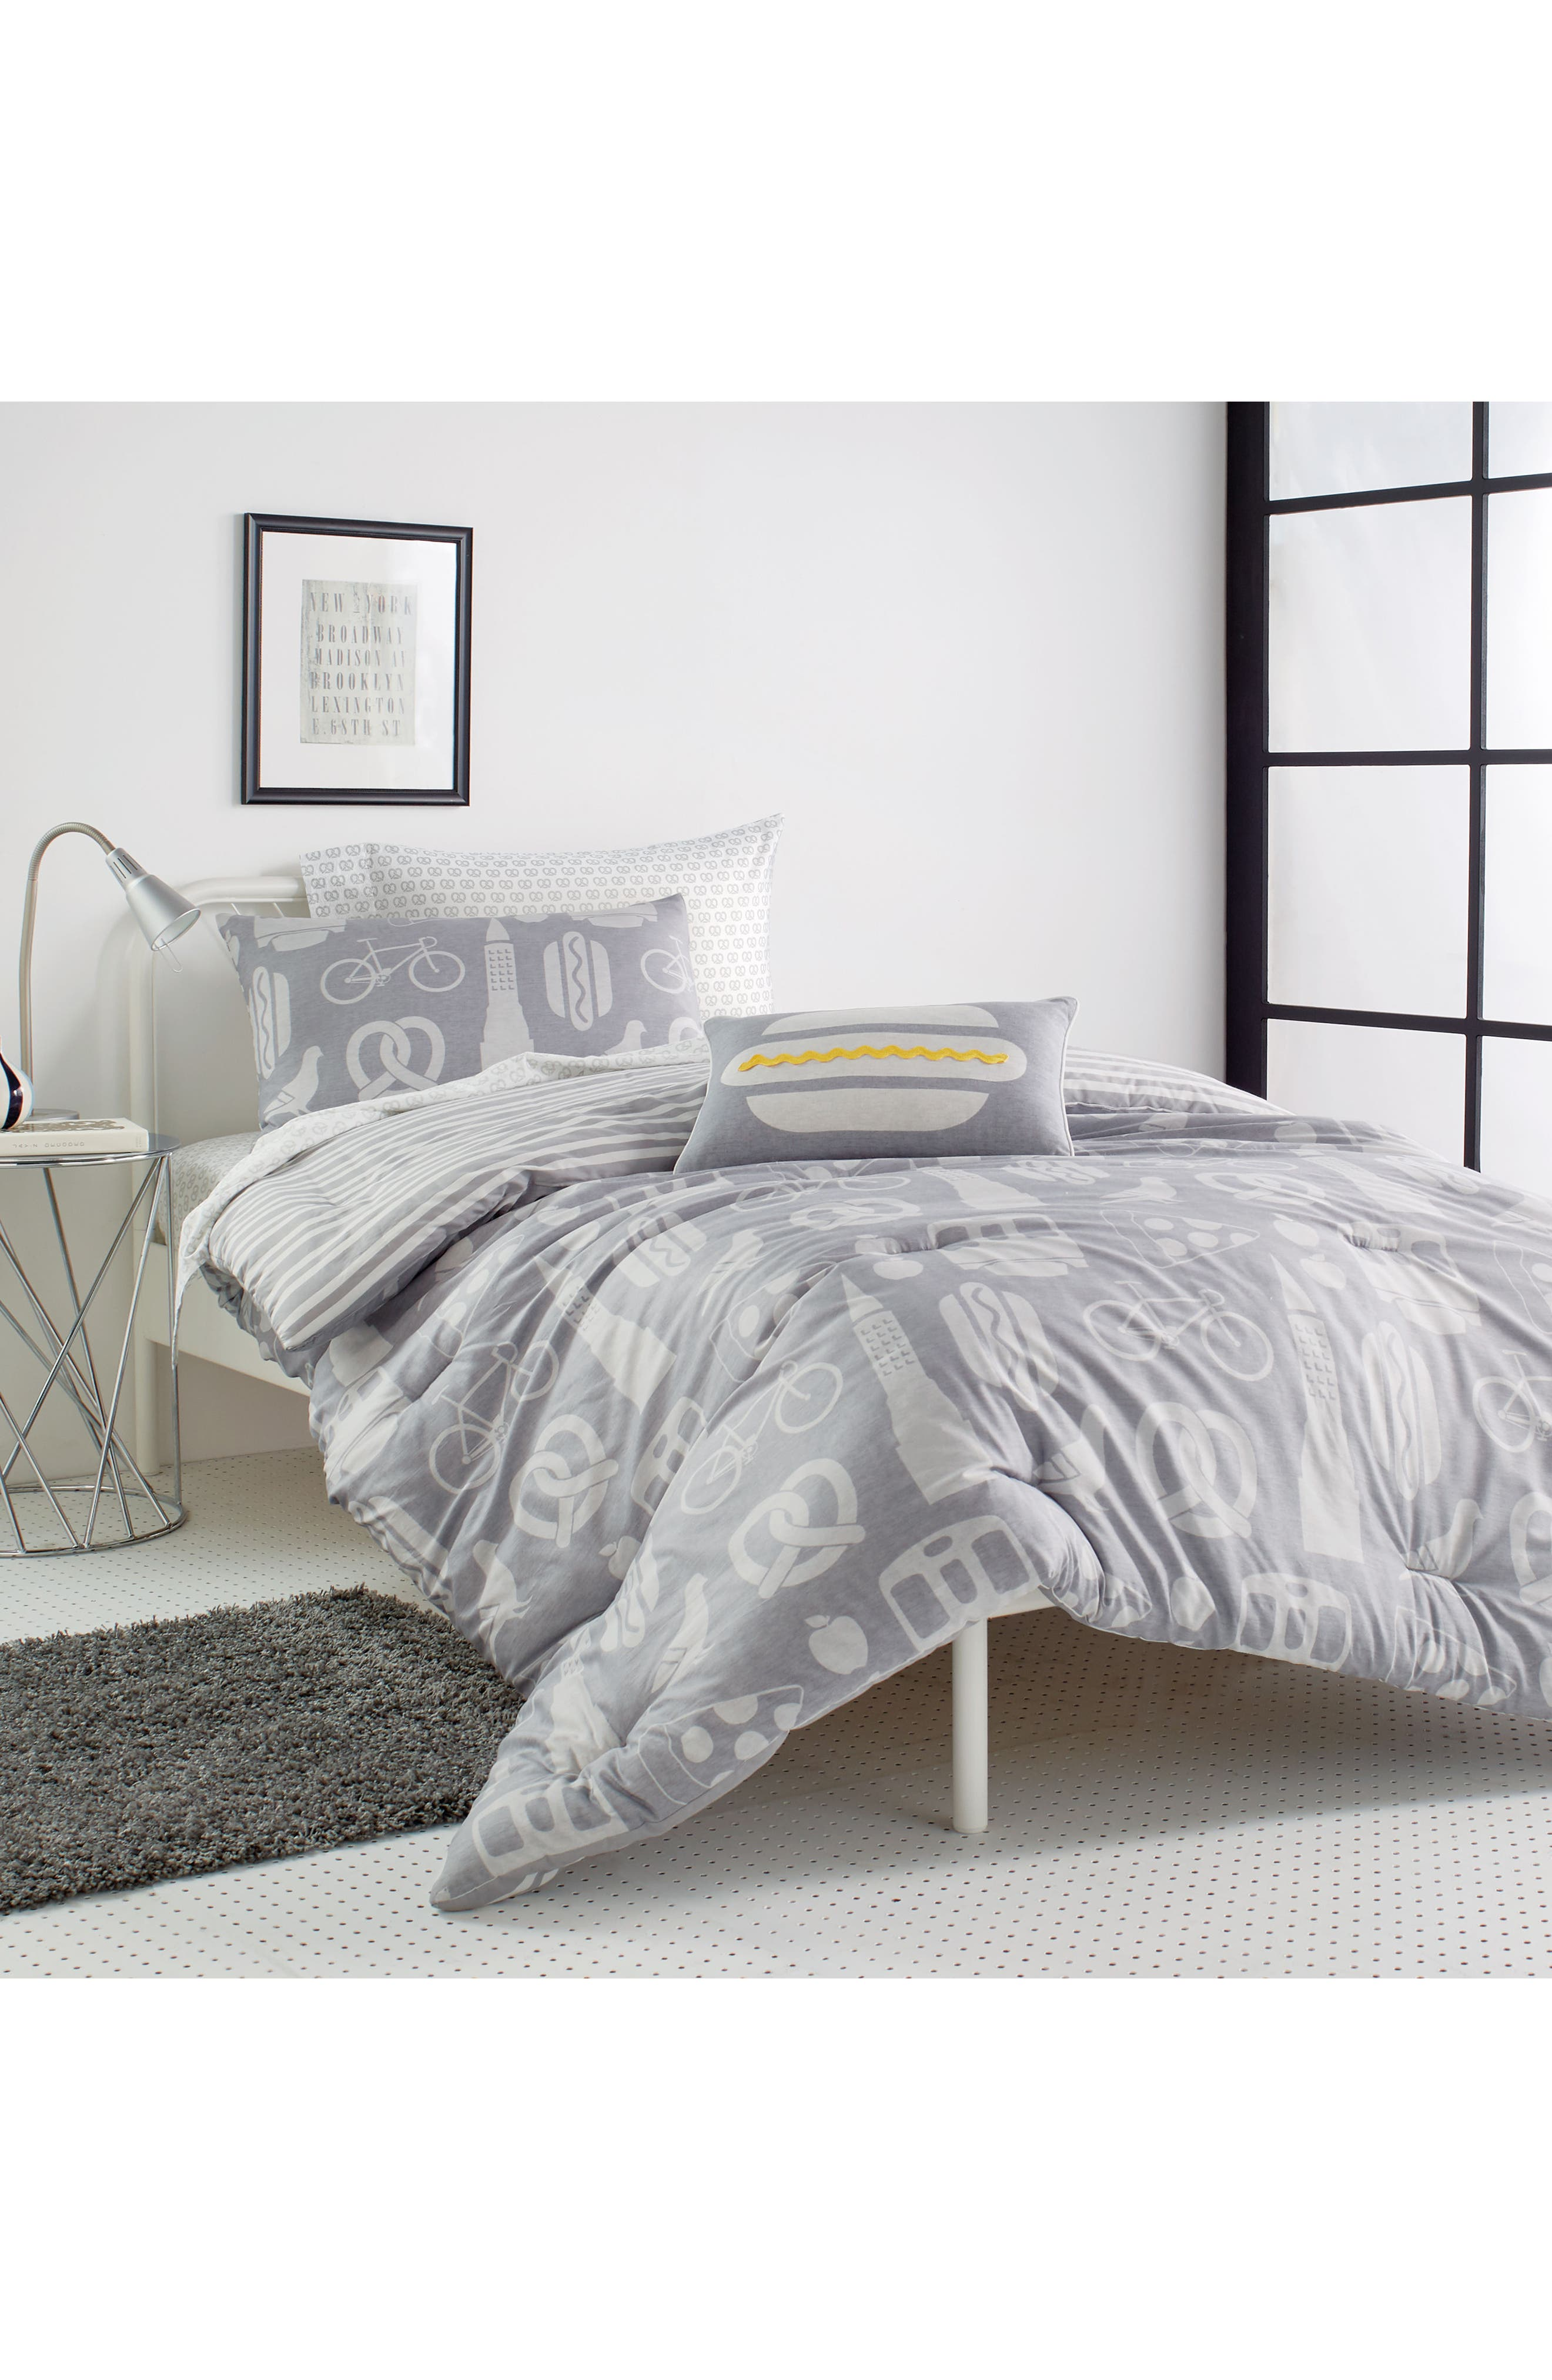 DKNY,                             NYC Comforter, Sham & Accent Pillow Set,                             Alternate thumbnail 5, color,                             GREY